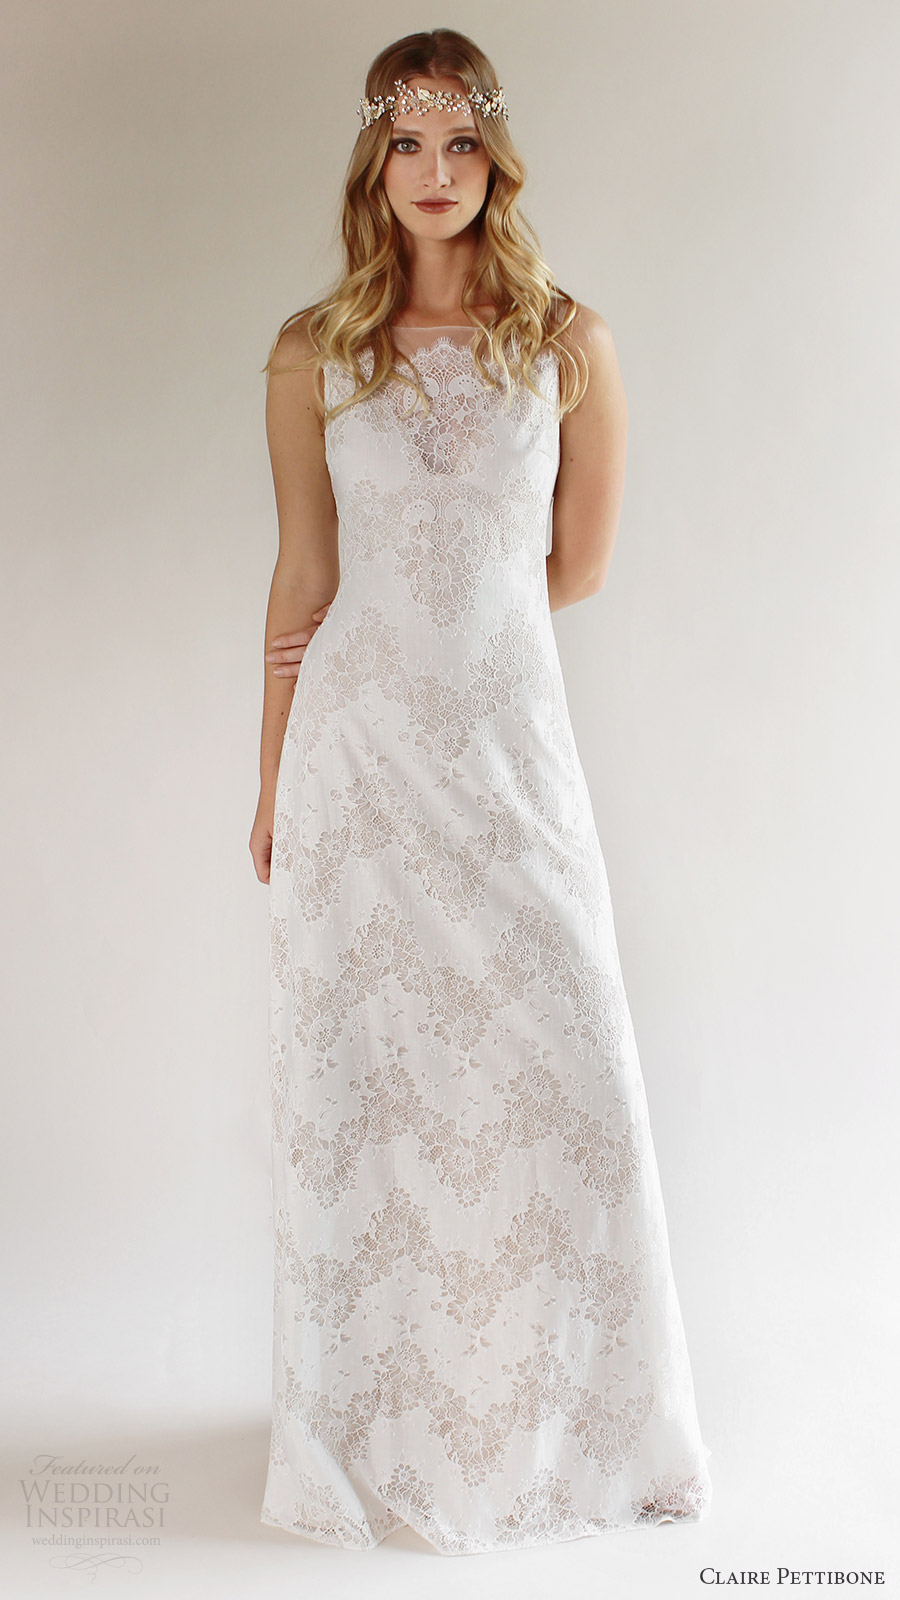 Romantique by claire pettibone spring 2017 wedding dresses for Where to buy claire pettibone wedding dress